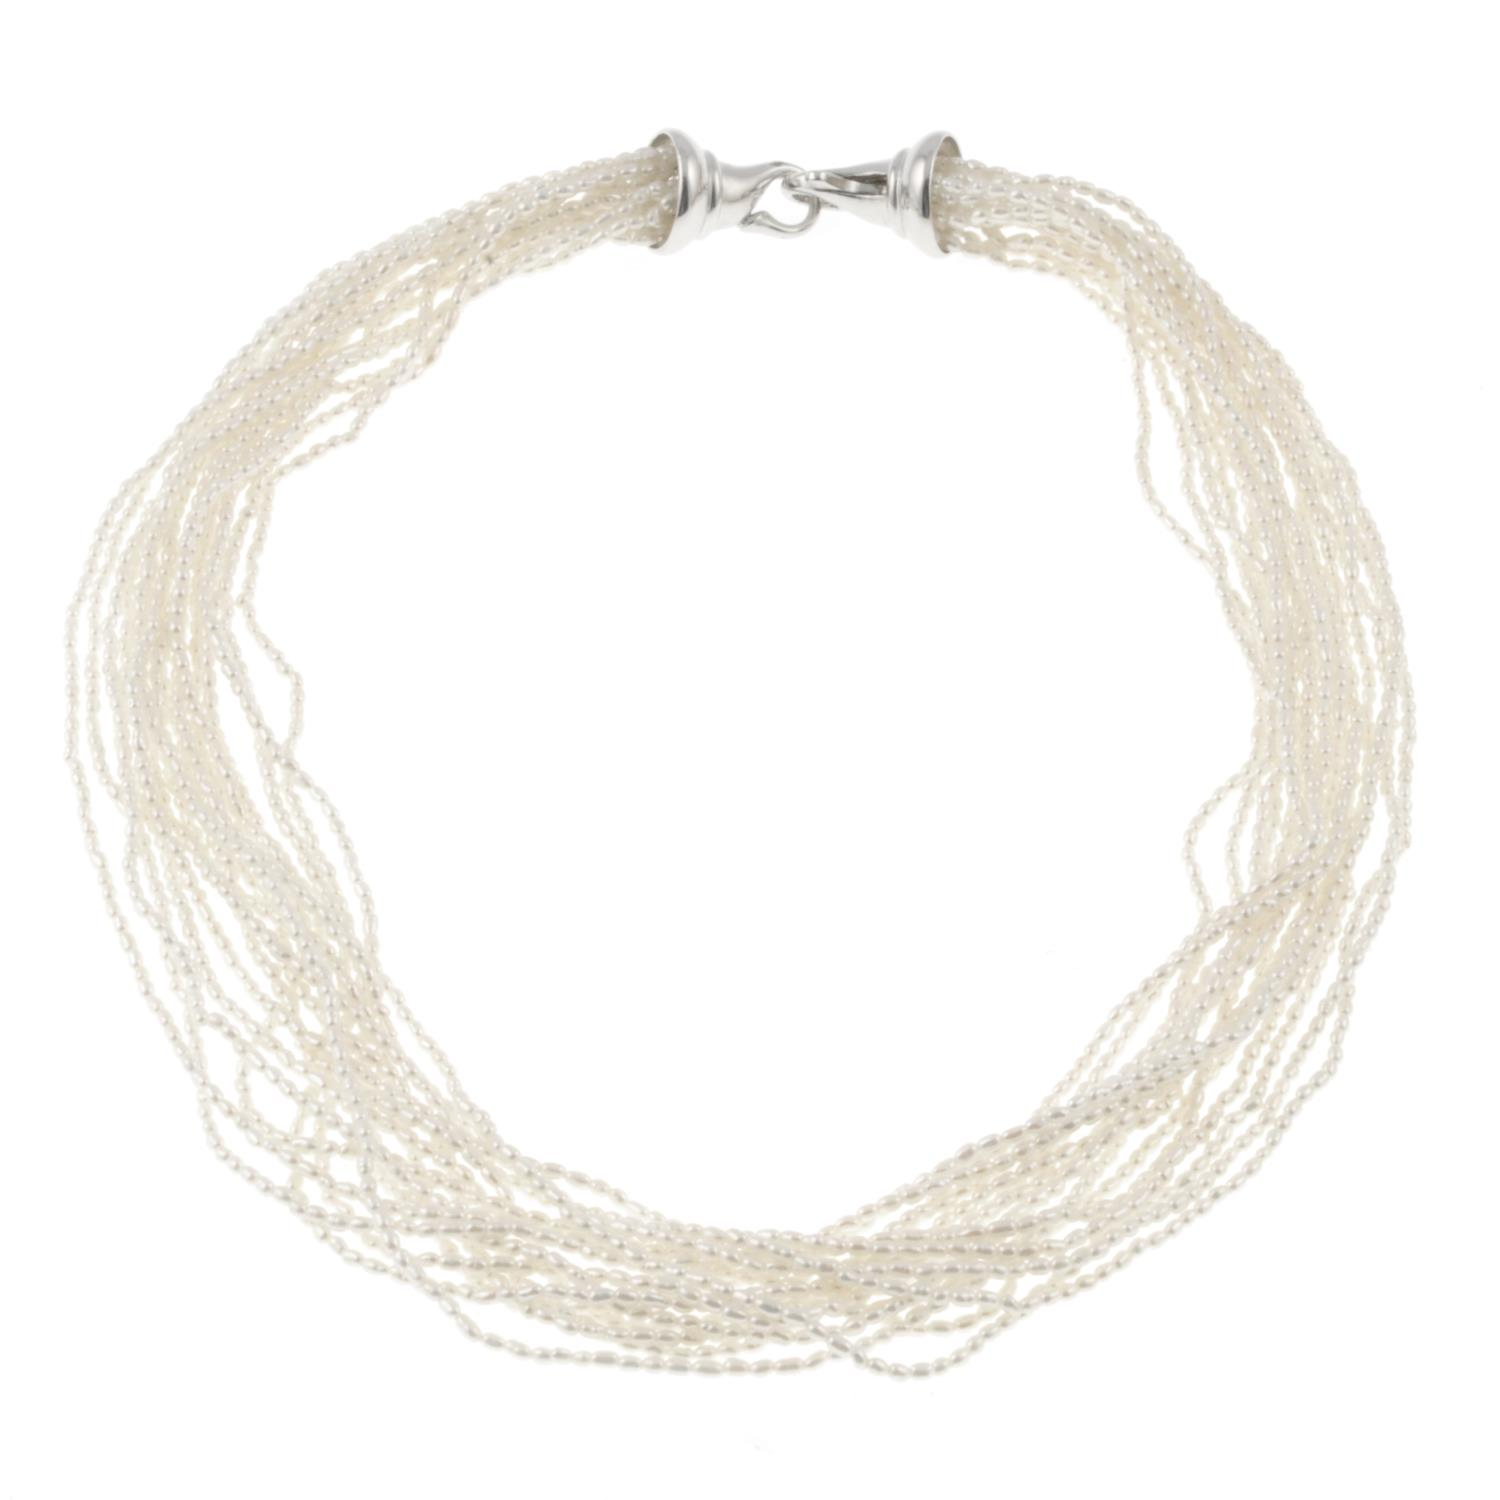 A multi-strand cultured seed pearl necklace.Clasp stamped 925. - Image 2 of 2